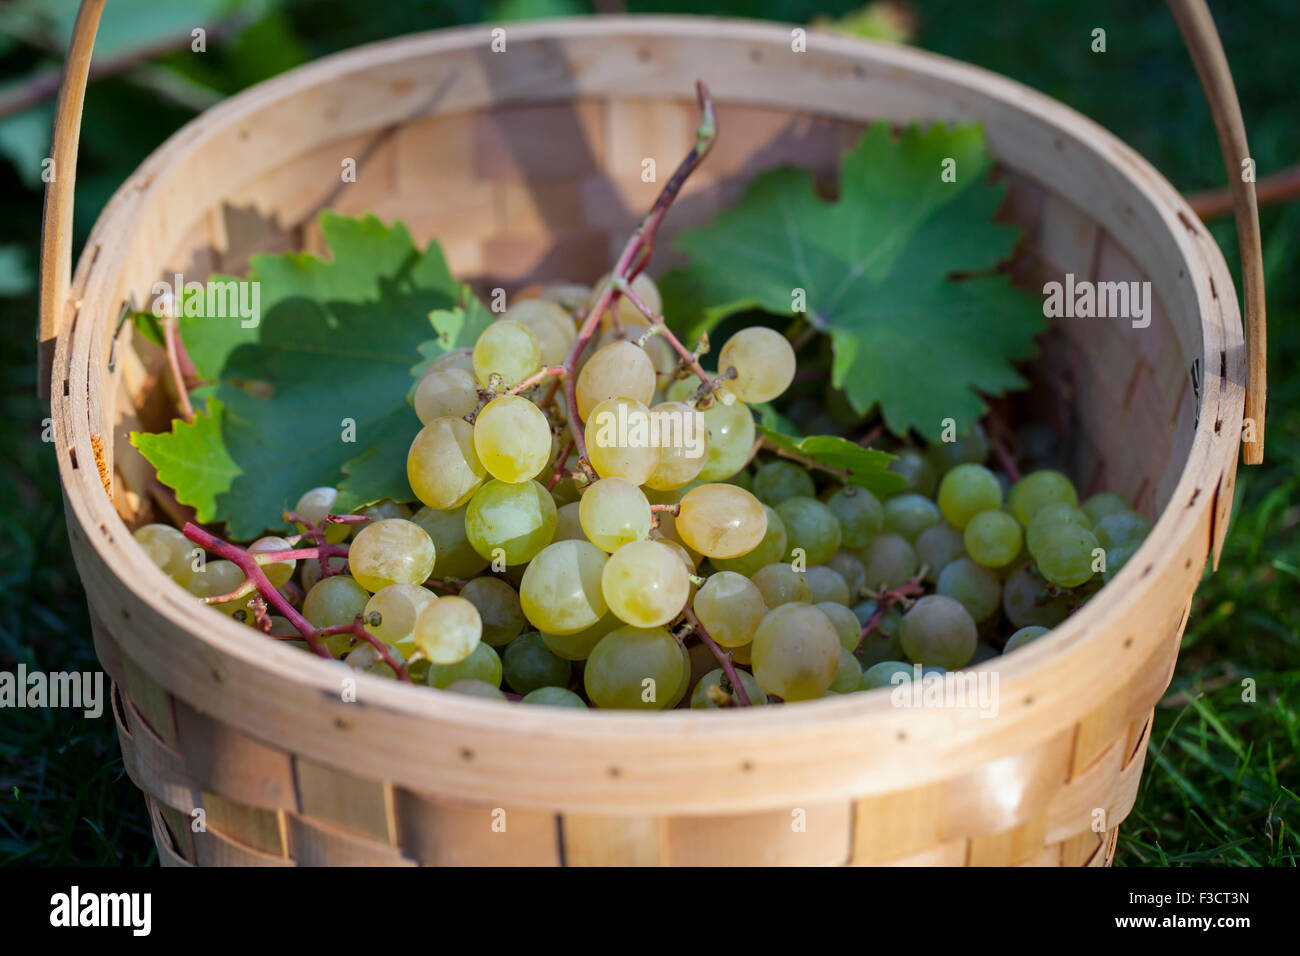 Grapes in the basket - Stock Image